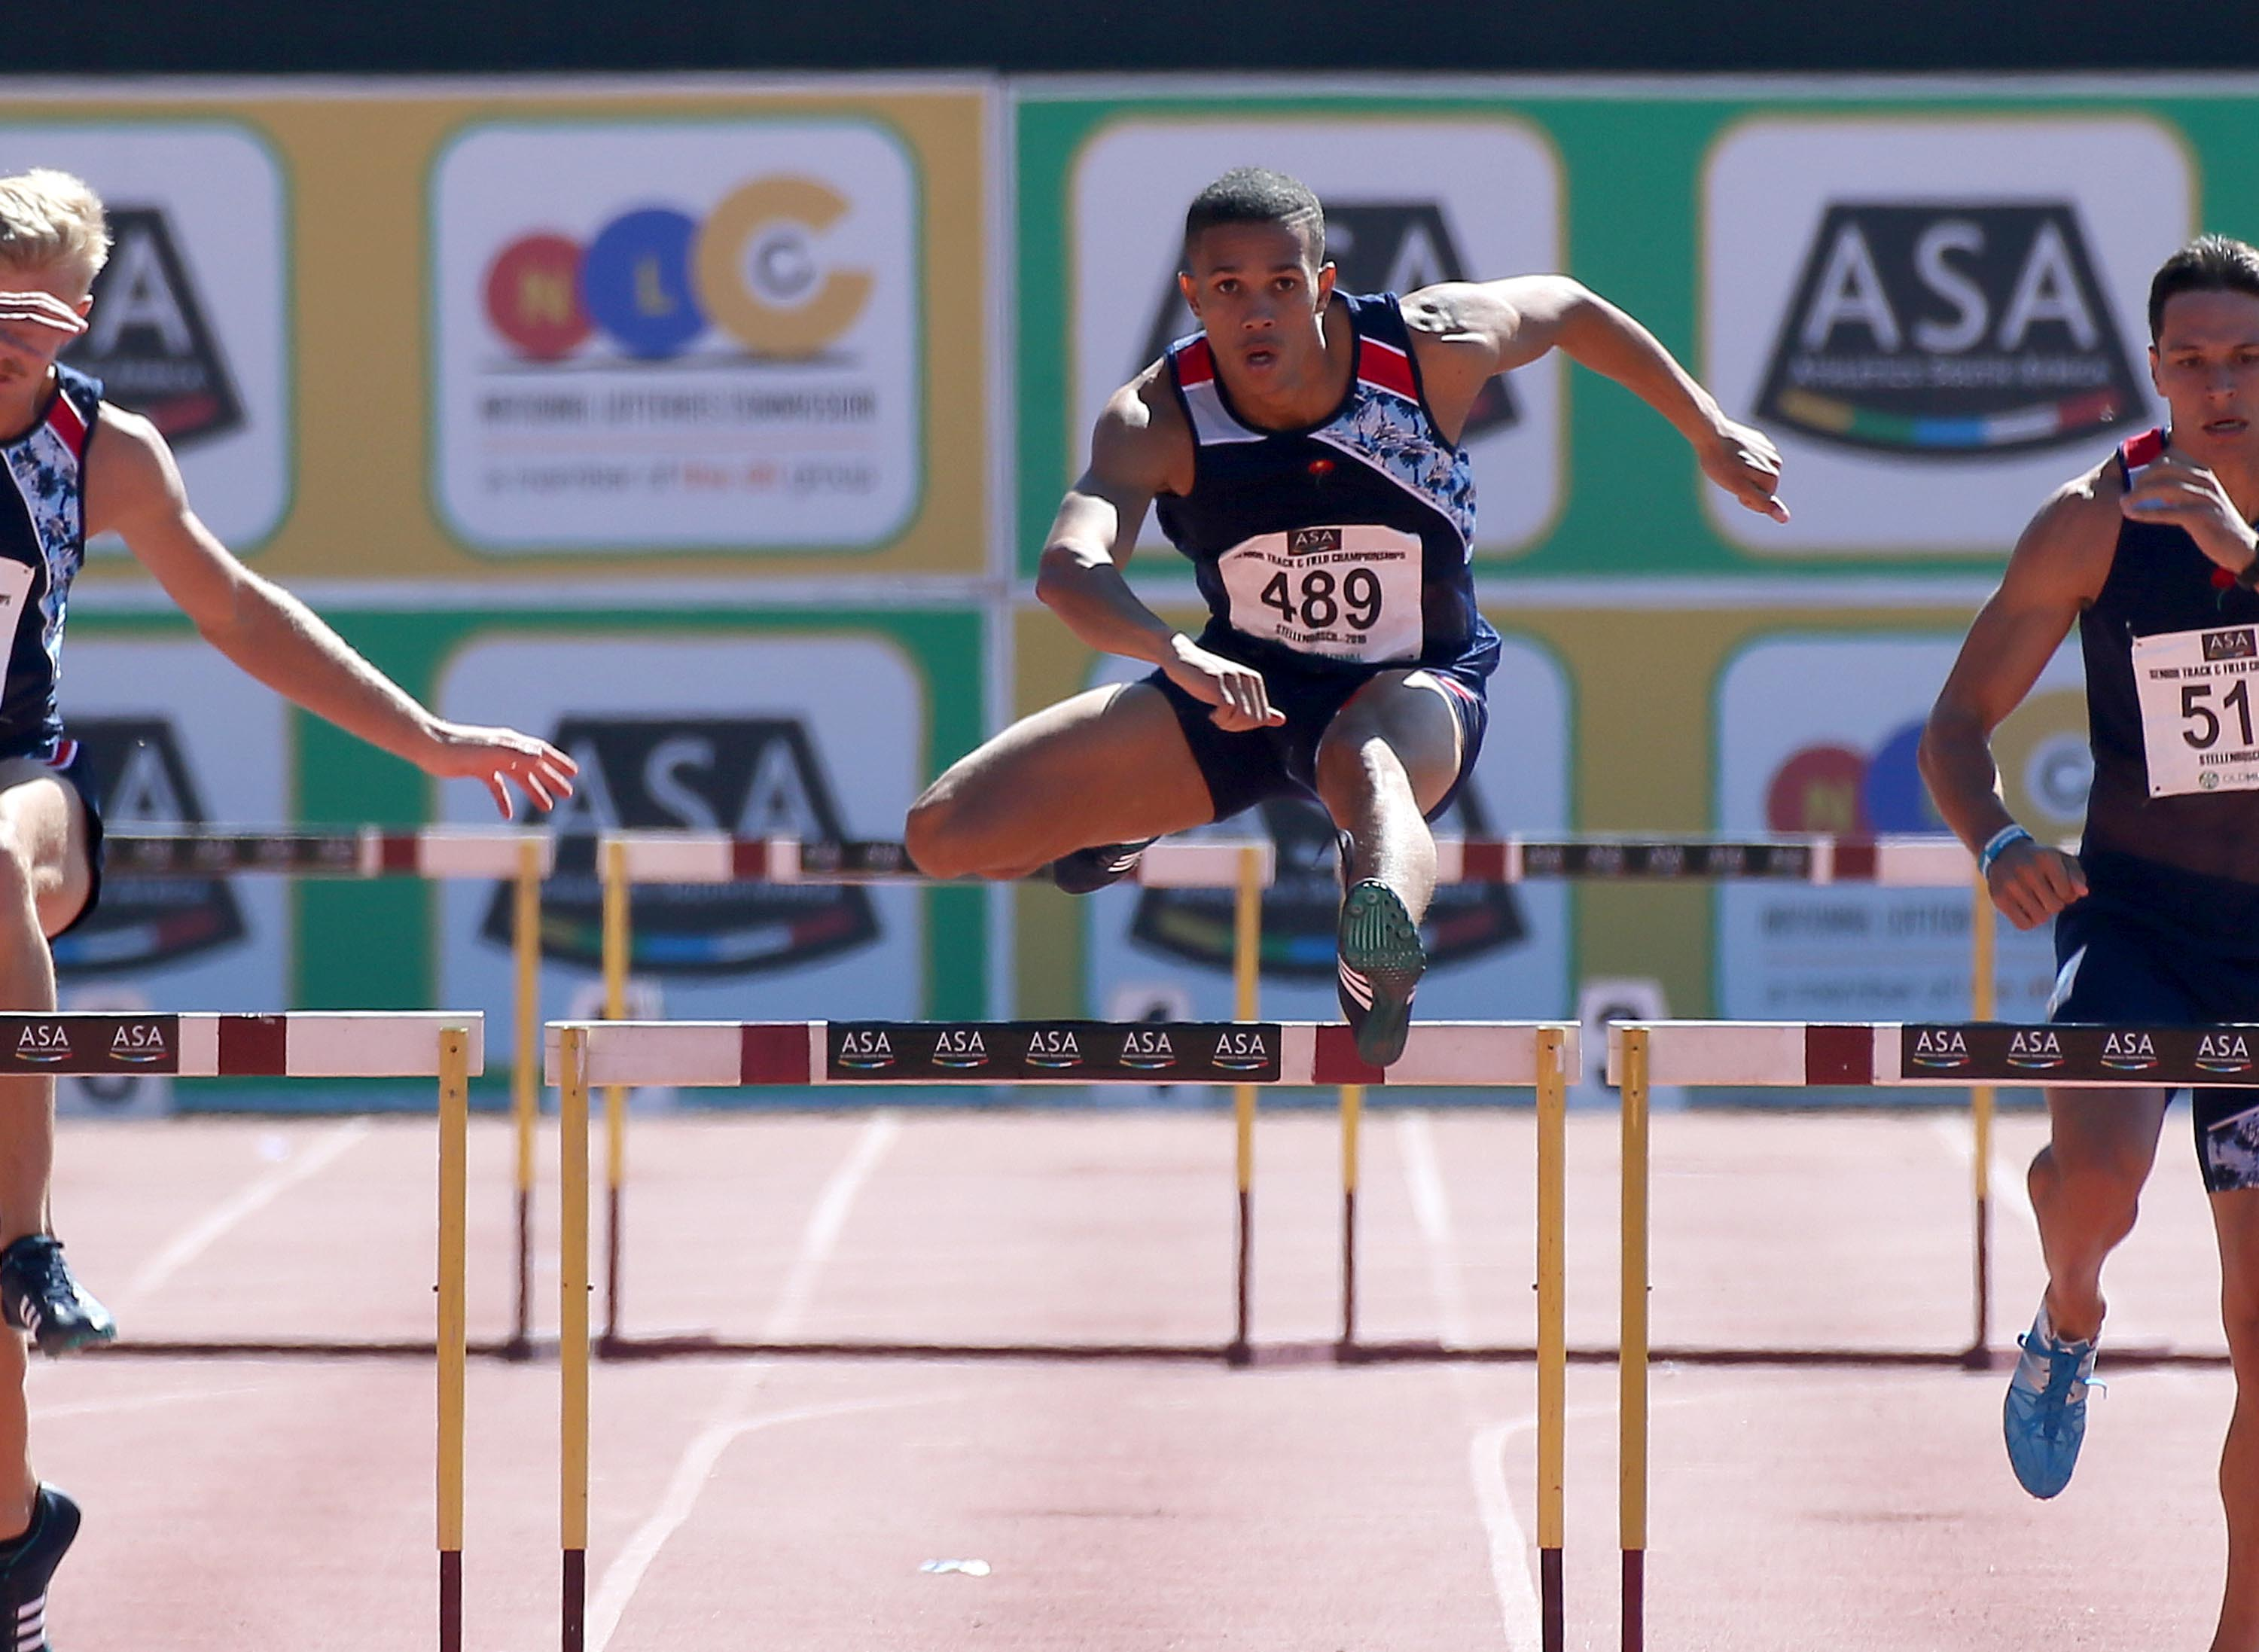 Hanekom in a hurry to clear that final Rio qualifying hurdle